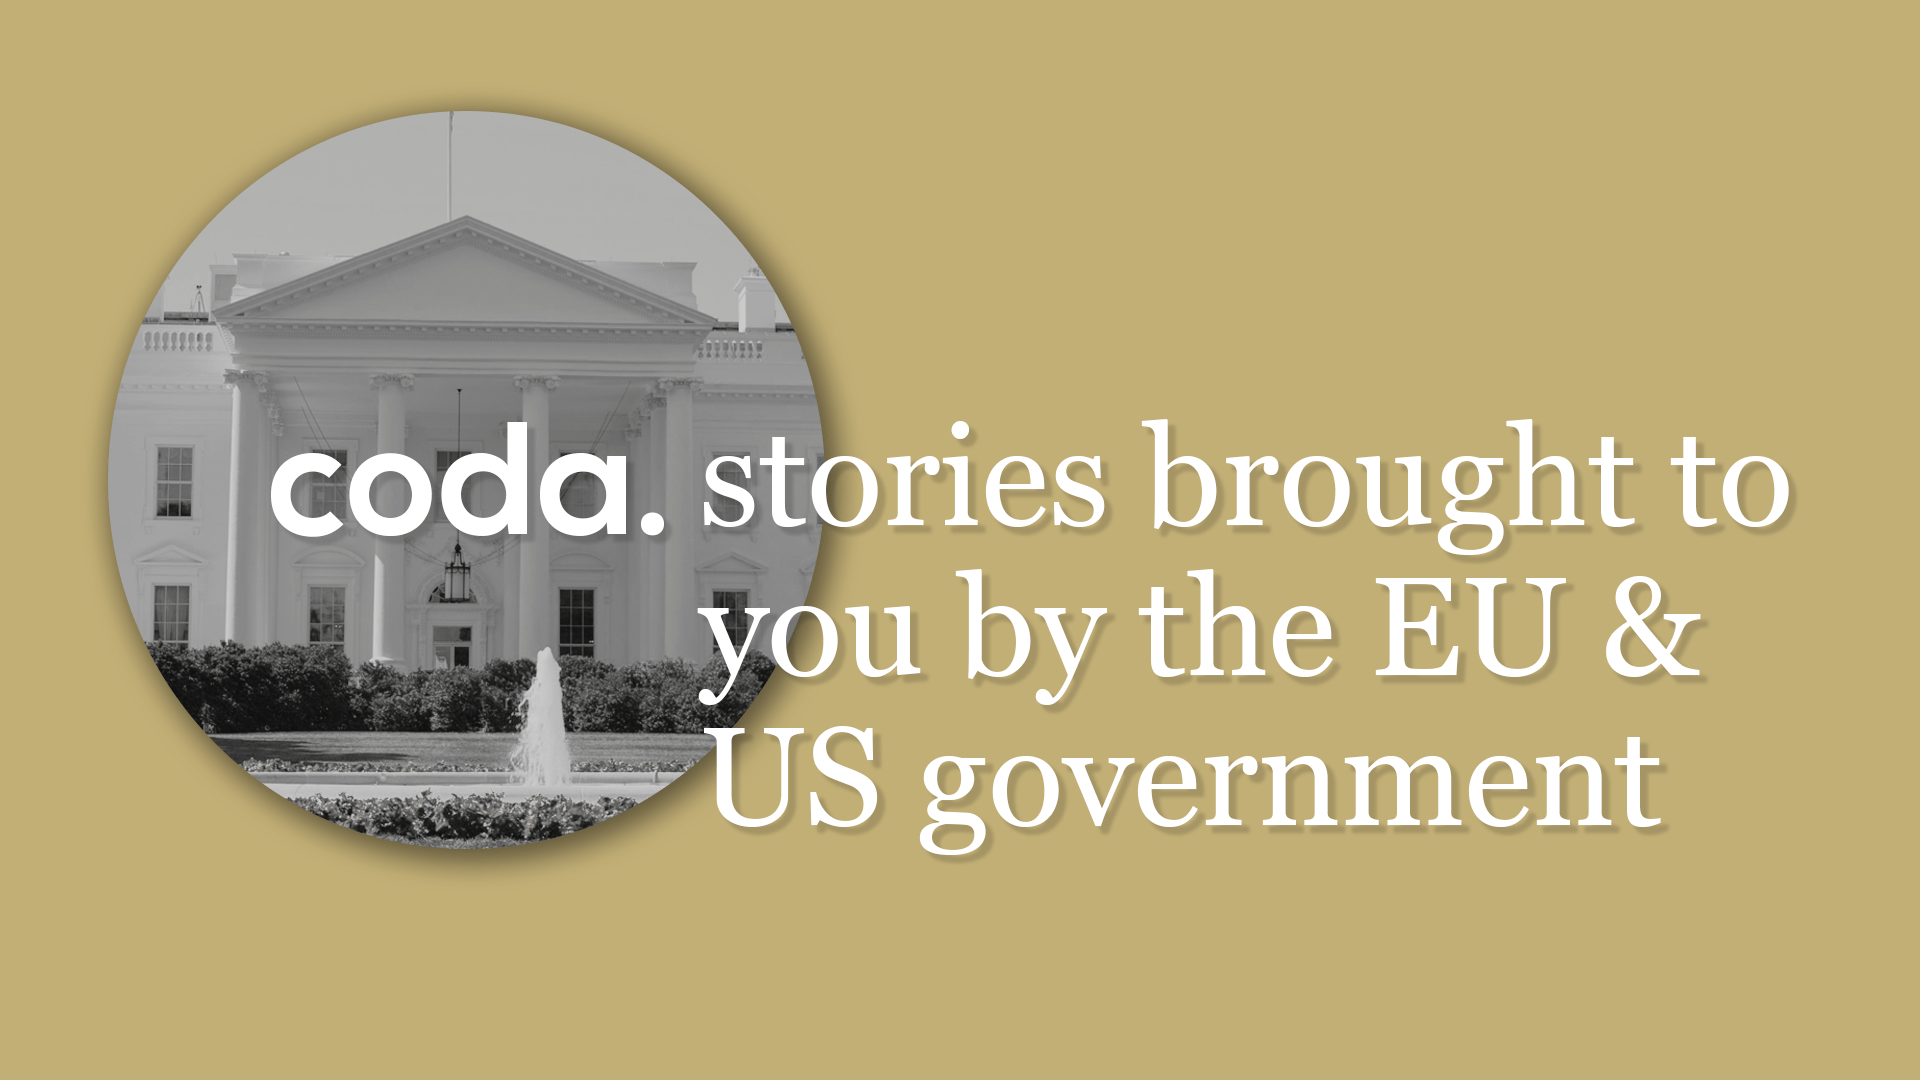 Coda Story NED US government EU neocon